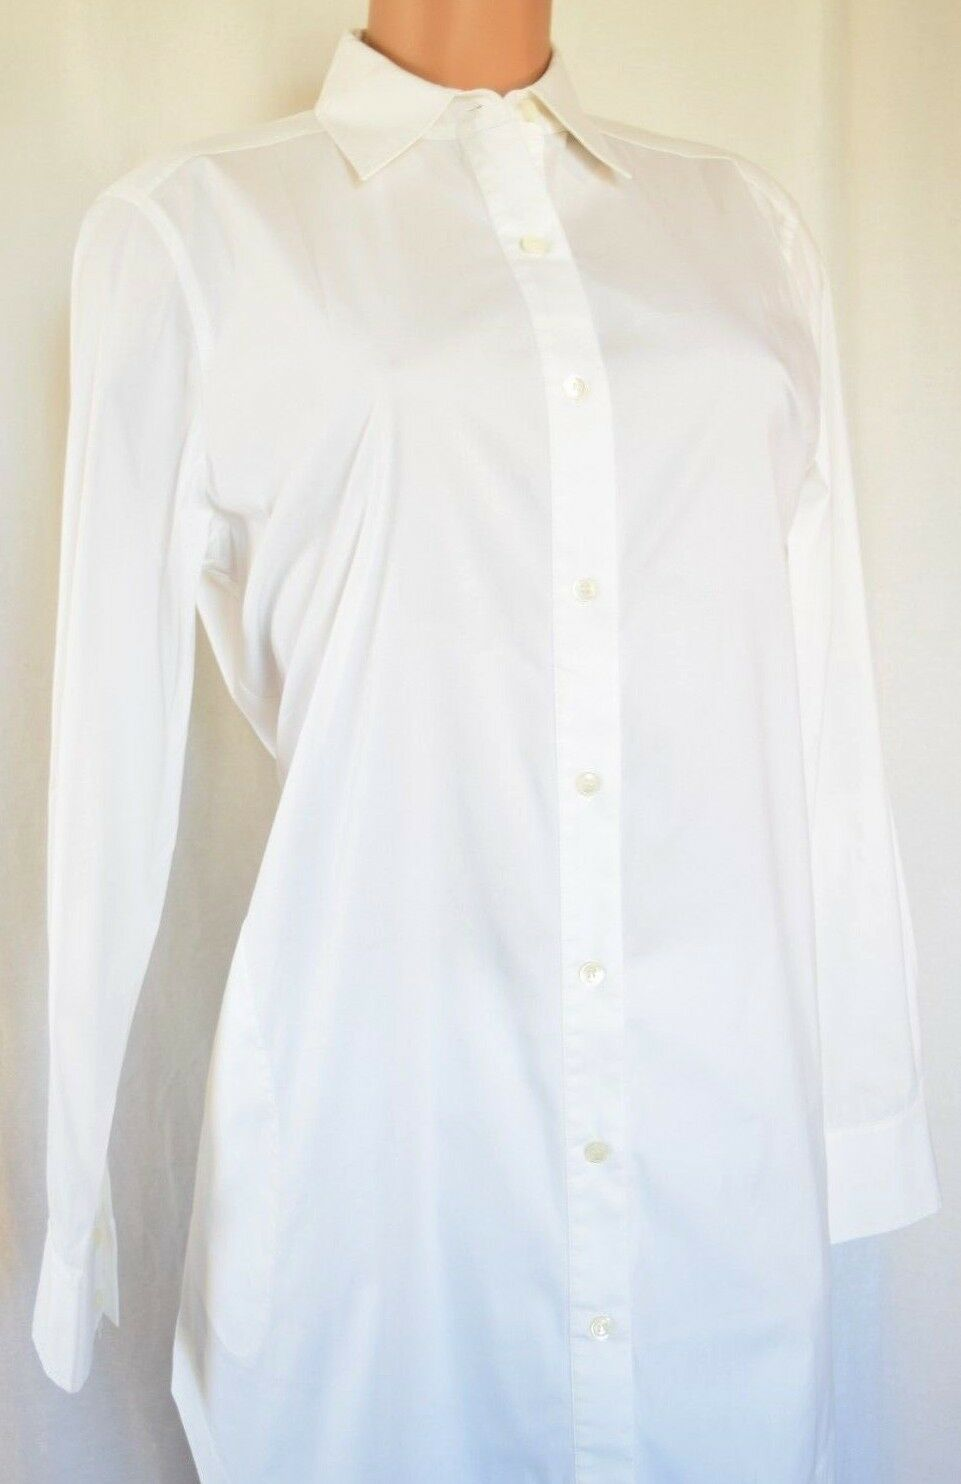 LAFAYETTE 148 WHITE COTTON LONG SLEEVES POINT COLLAR SHIRT SIZE 8